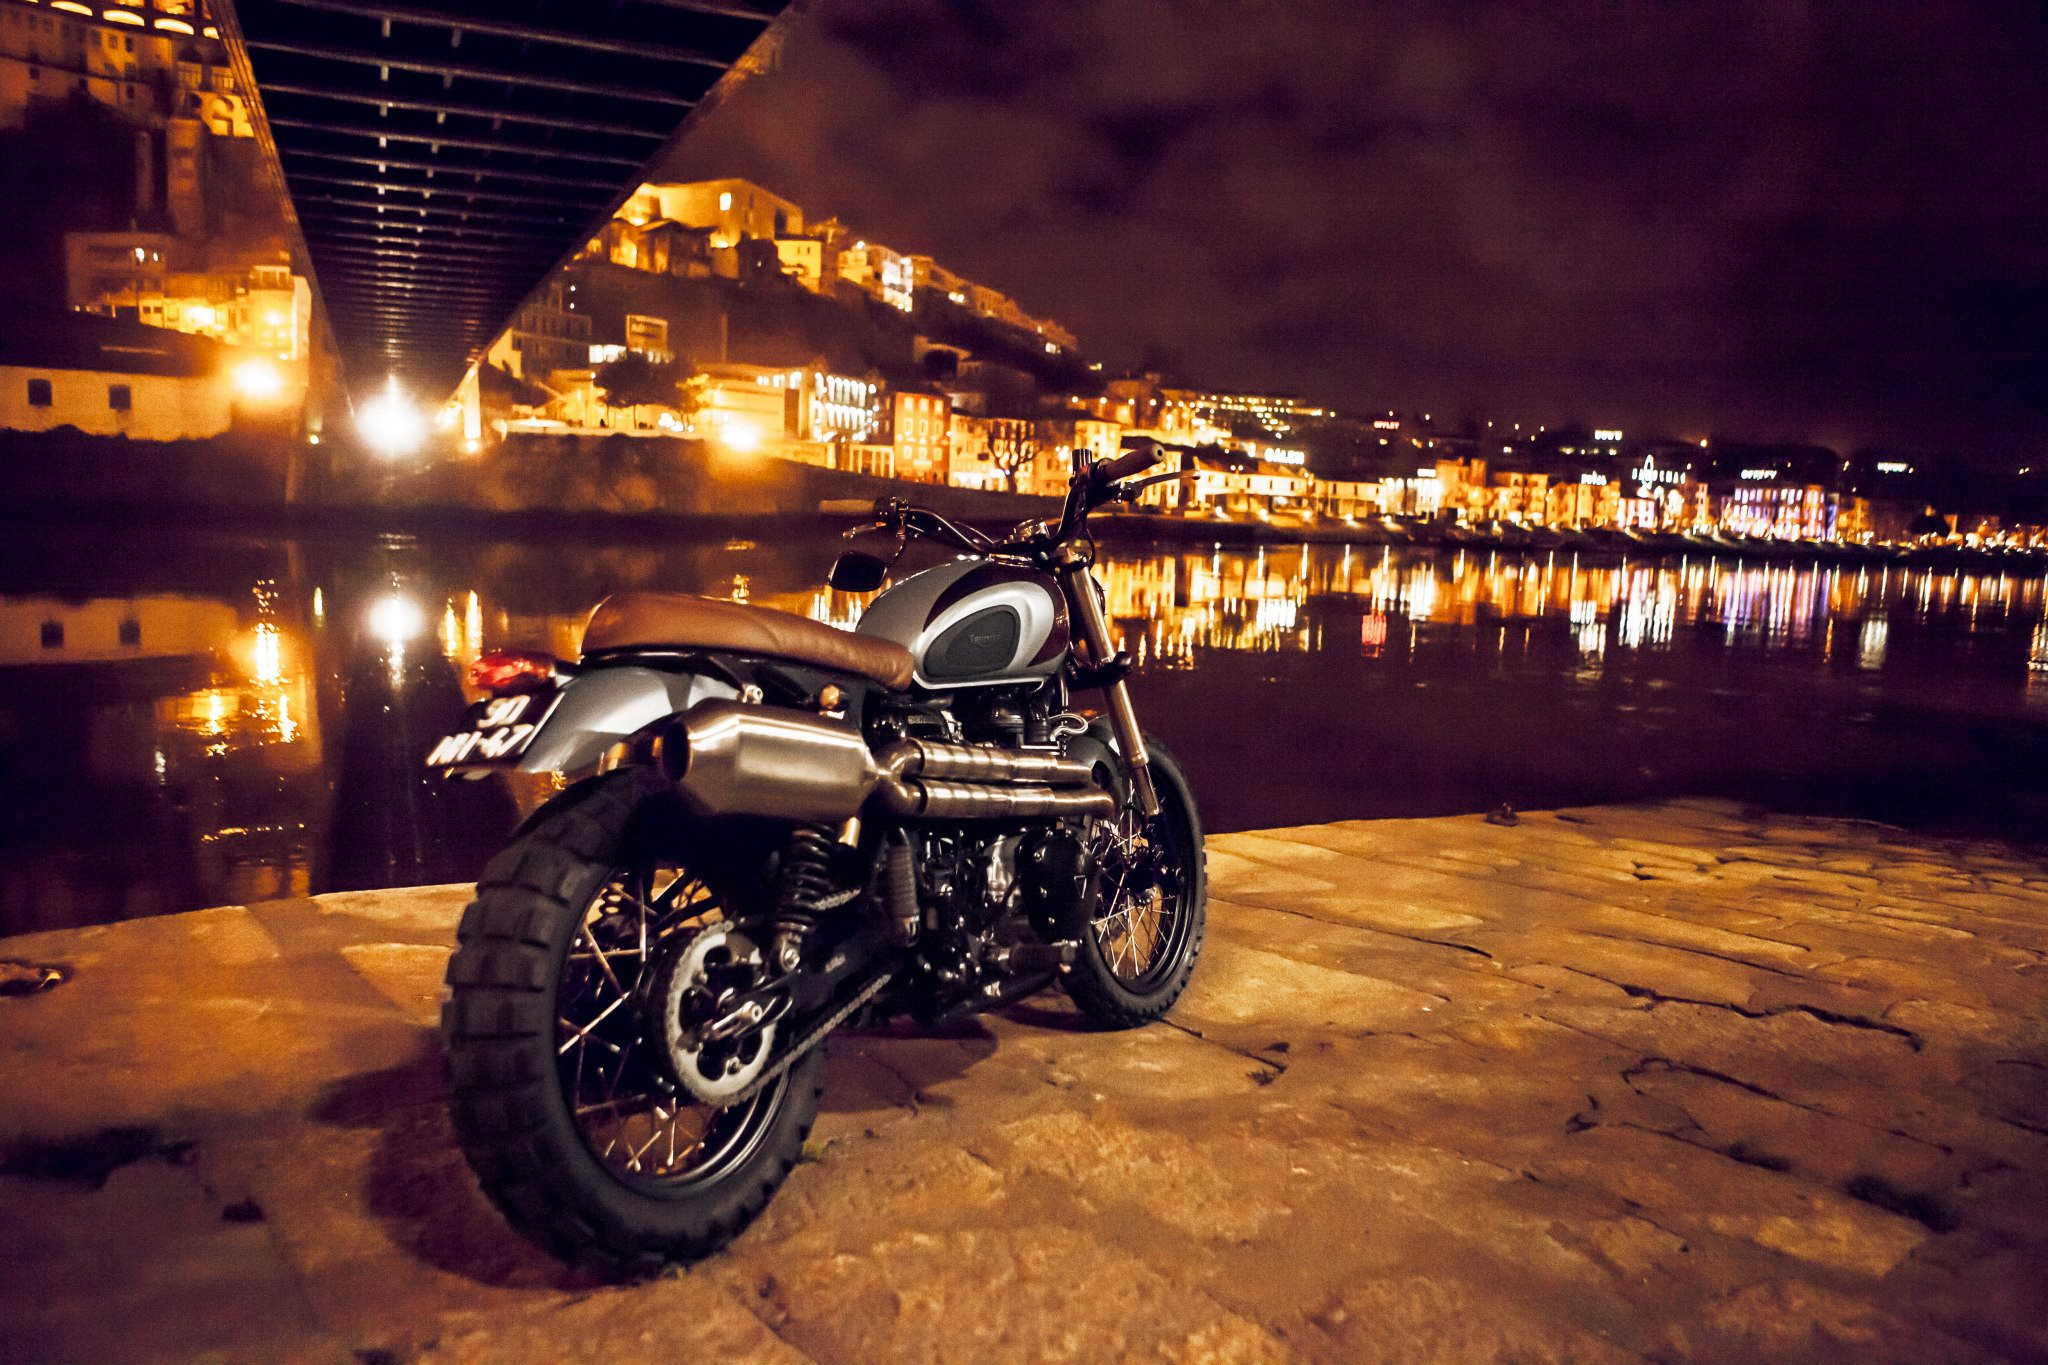 Custom triumph scrambler by ton up garage autoevolution for Newspaper wallpaper for sale